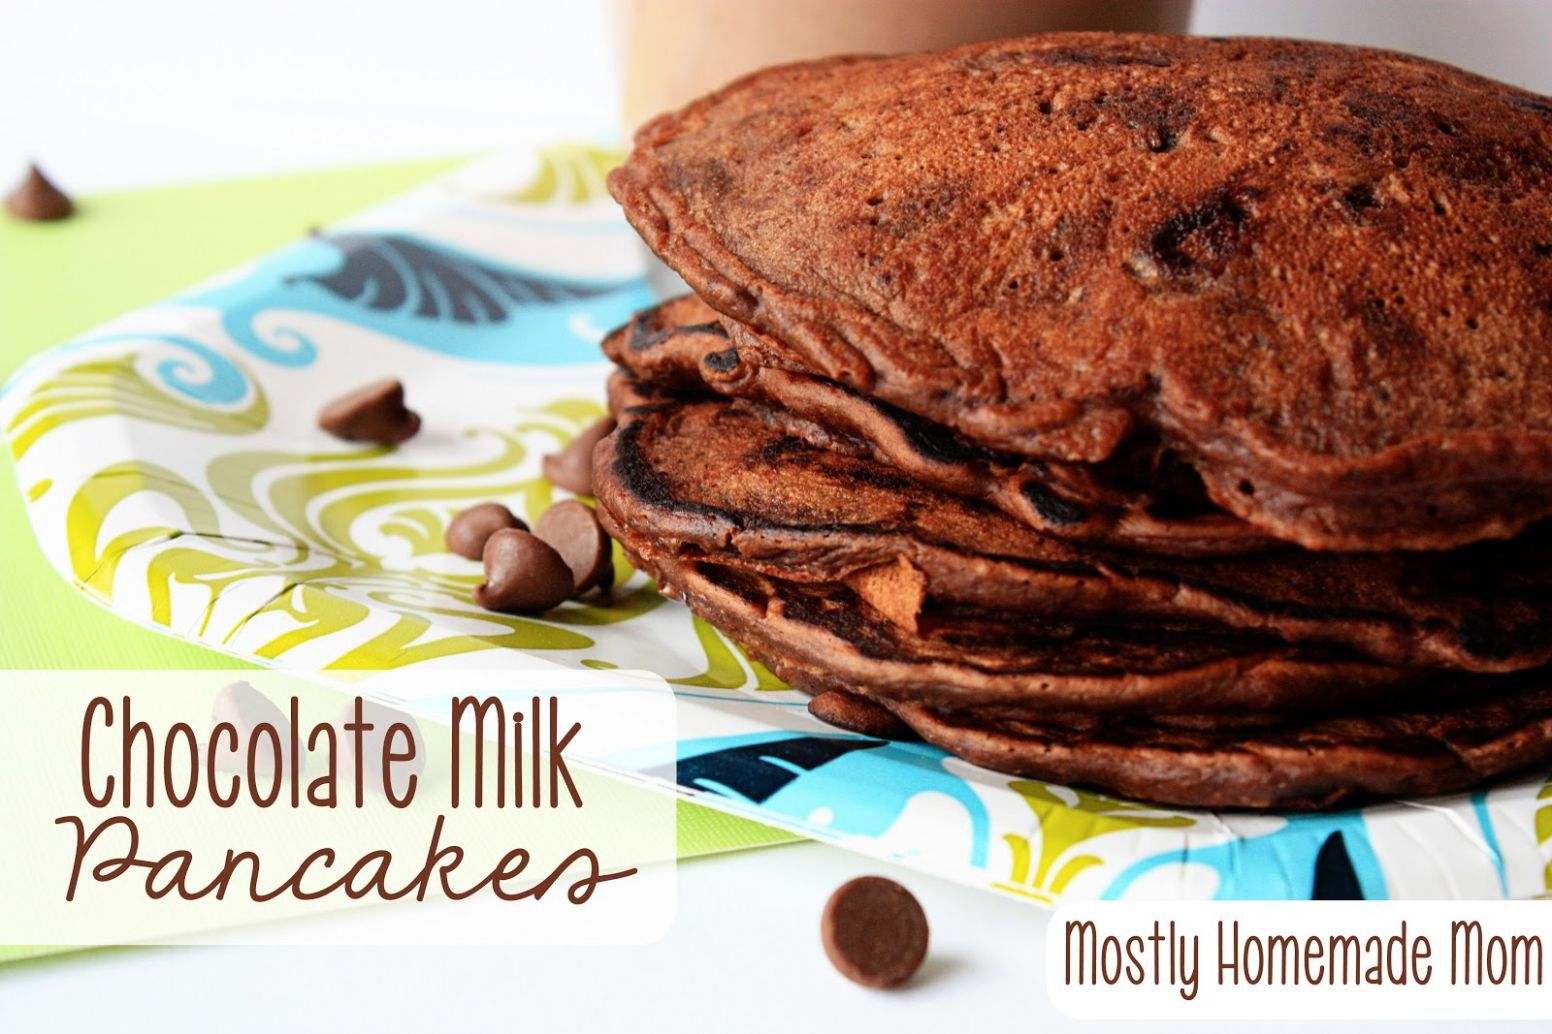 Chocolate Milk Pancakes - Mostly Homemade Mom - Recipes Using Chocolate Milk